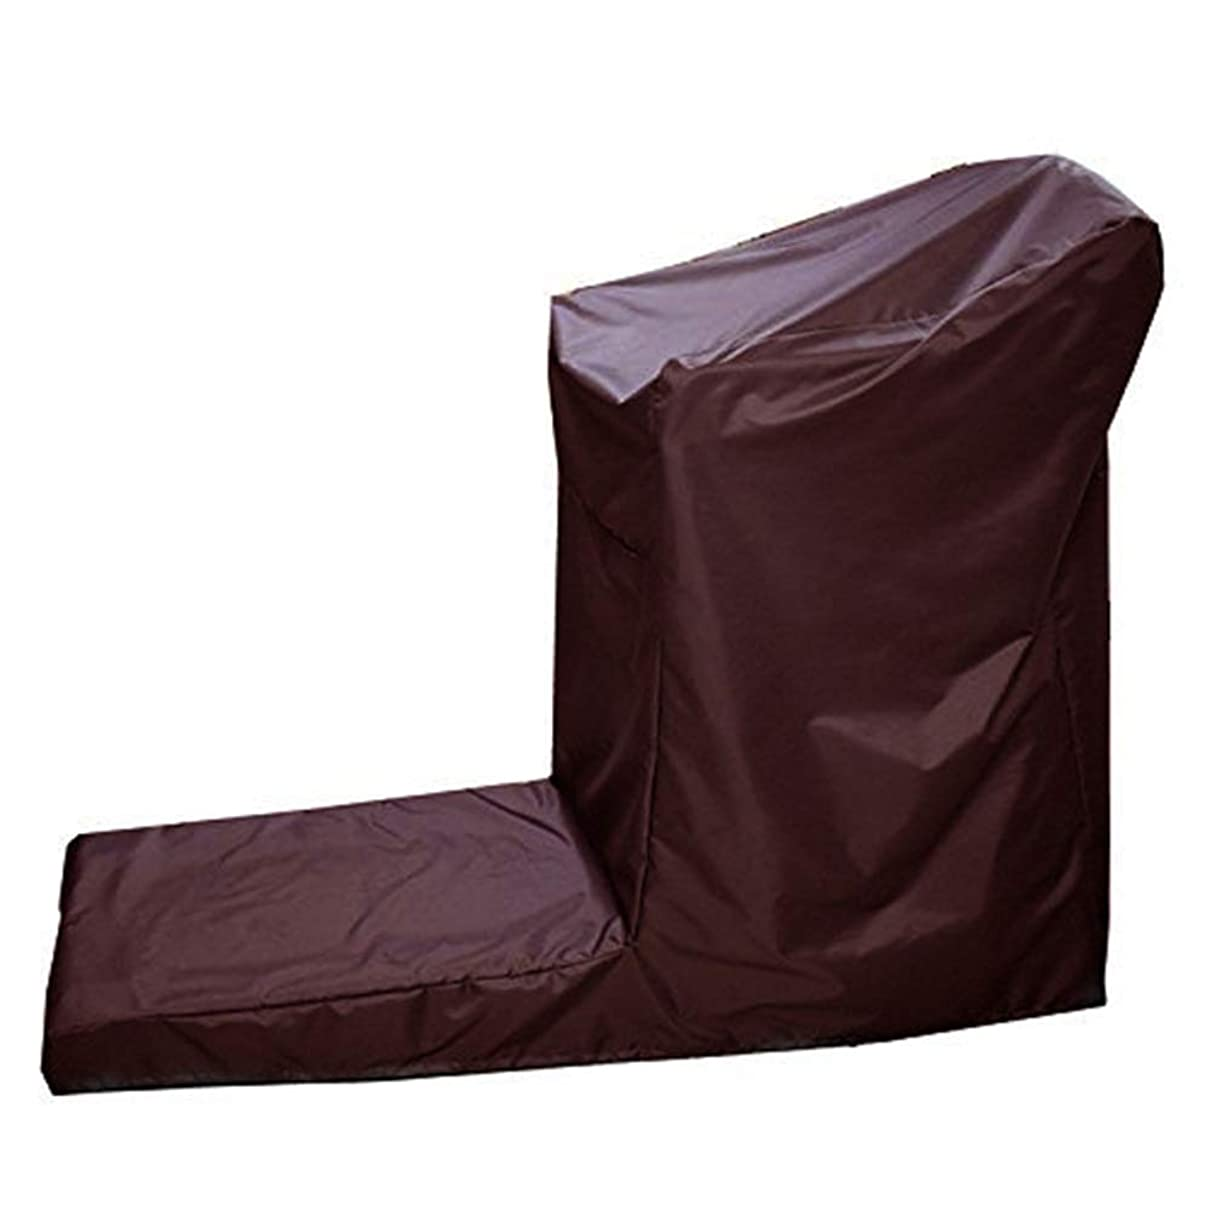 Courtyard Protection Cover/Tarpaulin Treadmill Cover Dust-Proof Waterproof Sunscreen Thickened, Multiple Sizes Available, WenMing Yue, Brown, 205x95x170cm